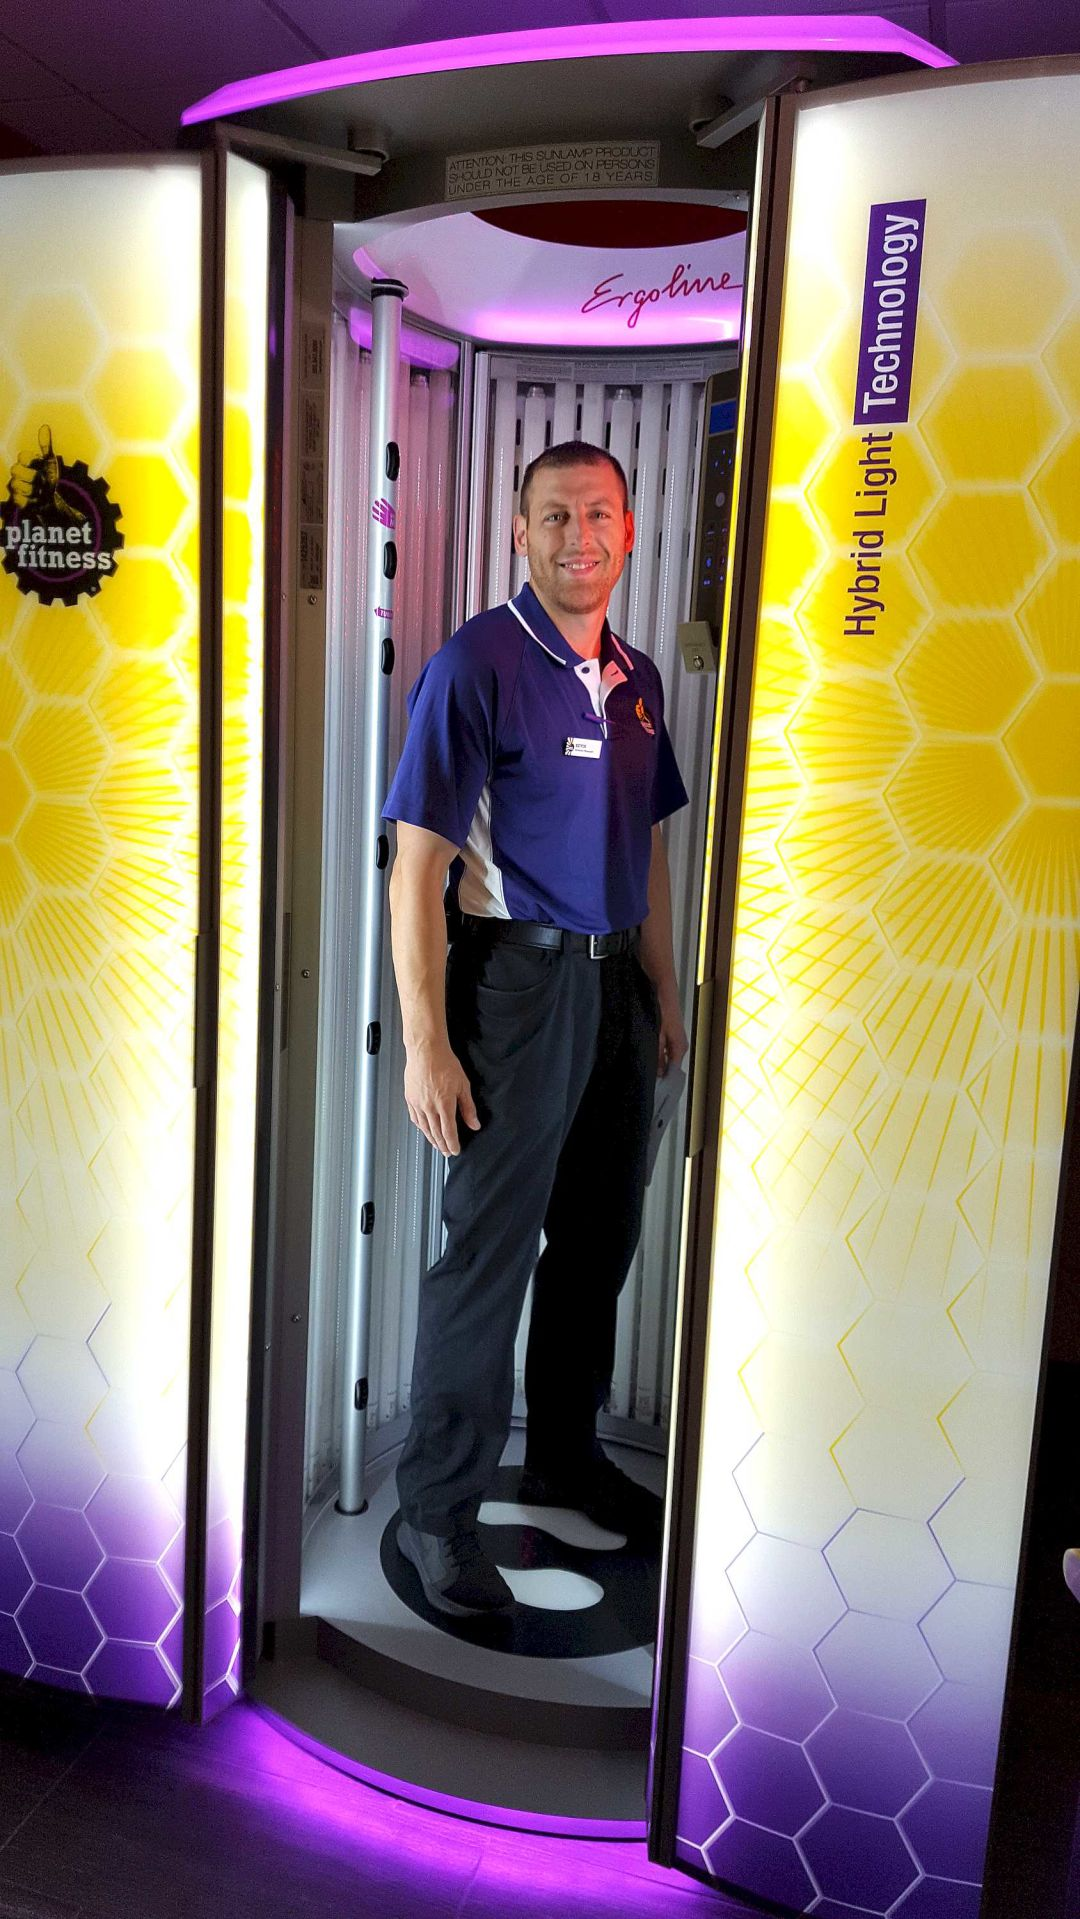 Planet Fitness Arrives In Sebring News Midfloridanewspapers Com